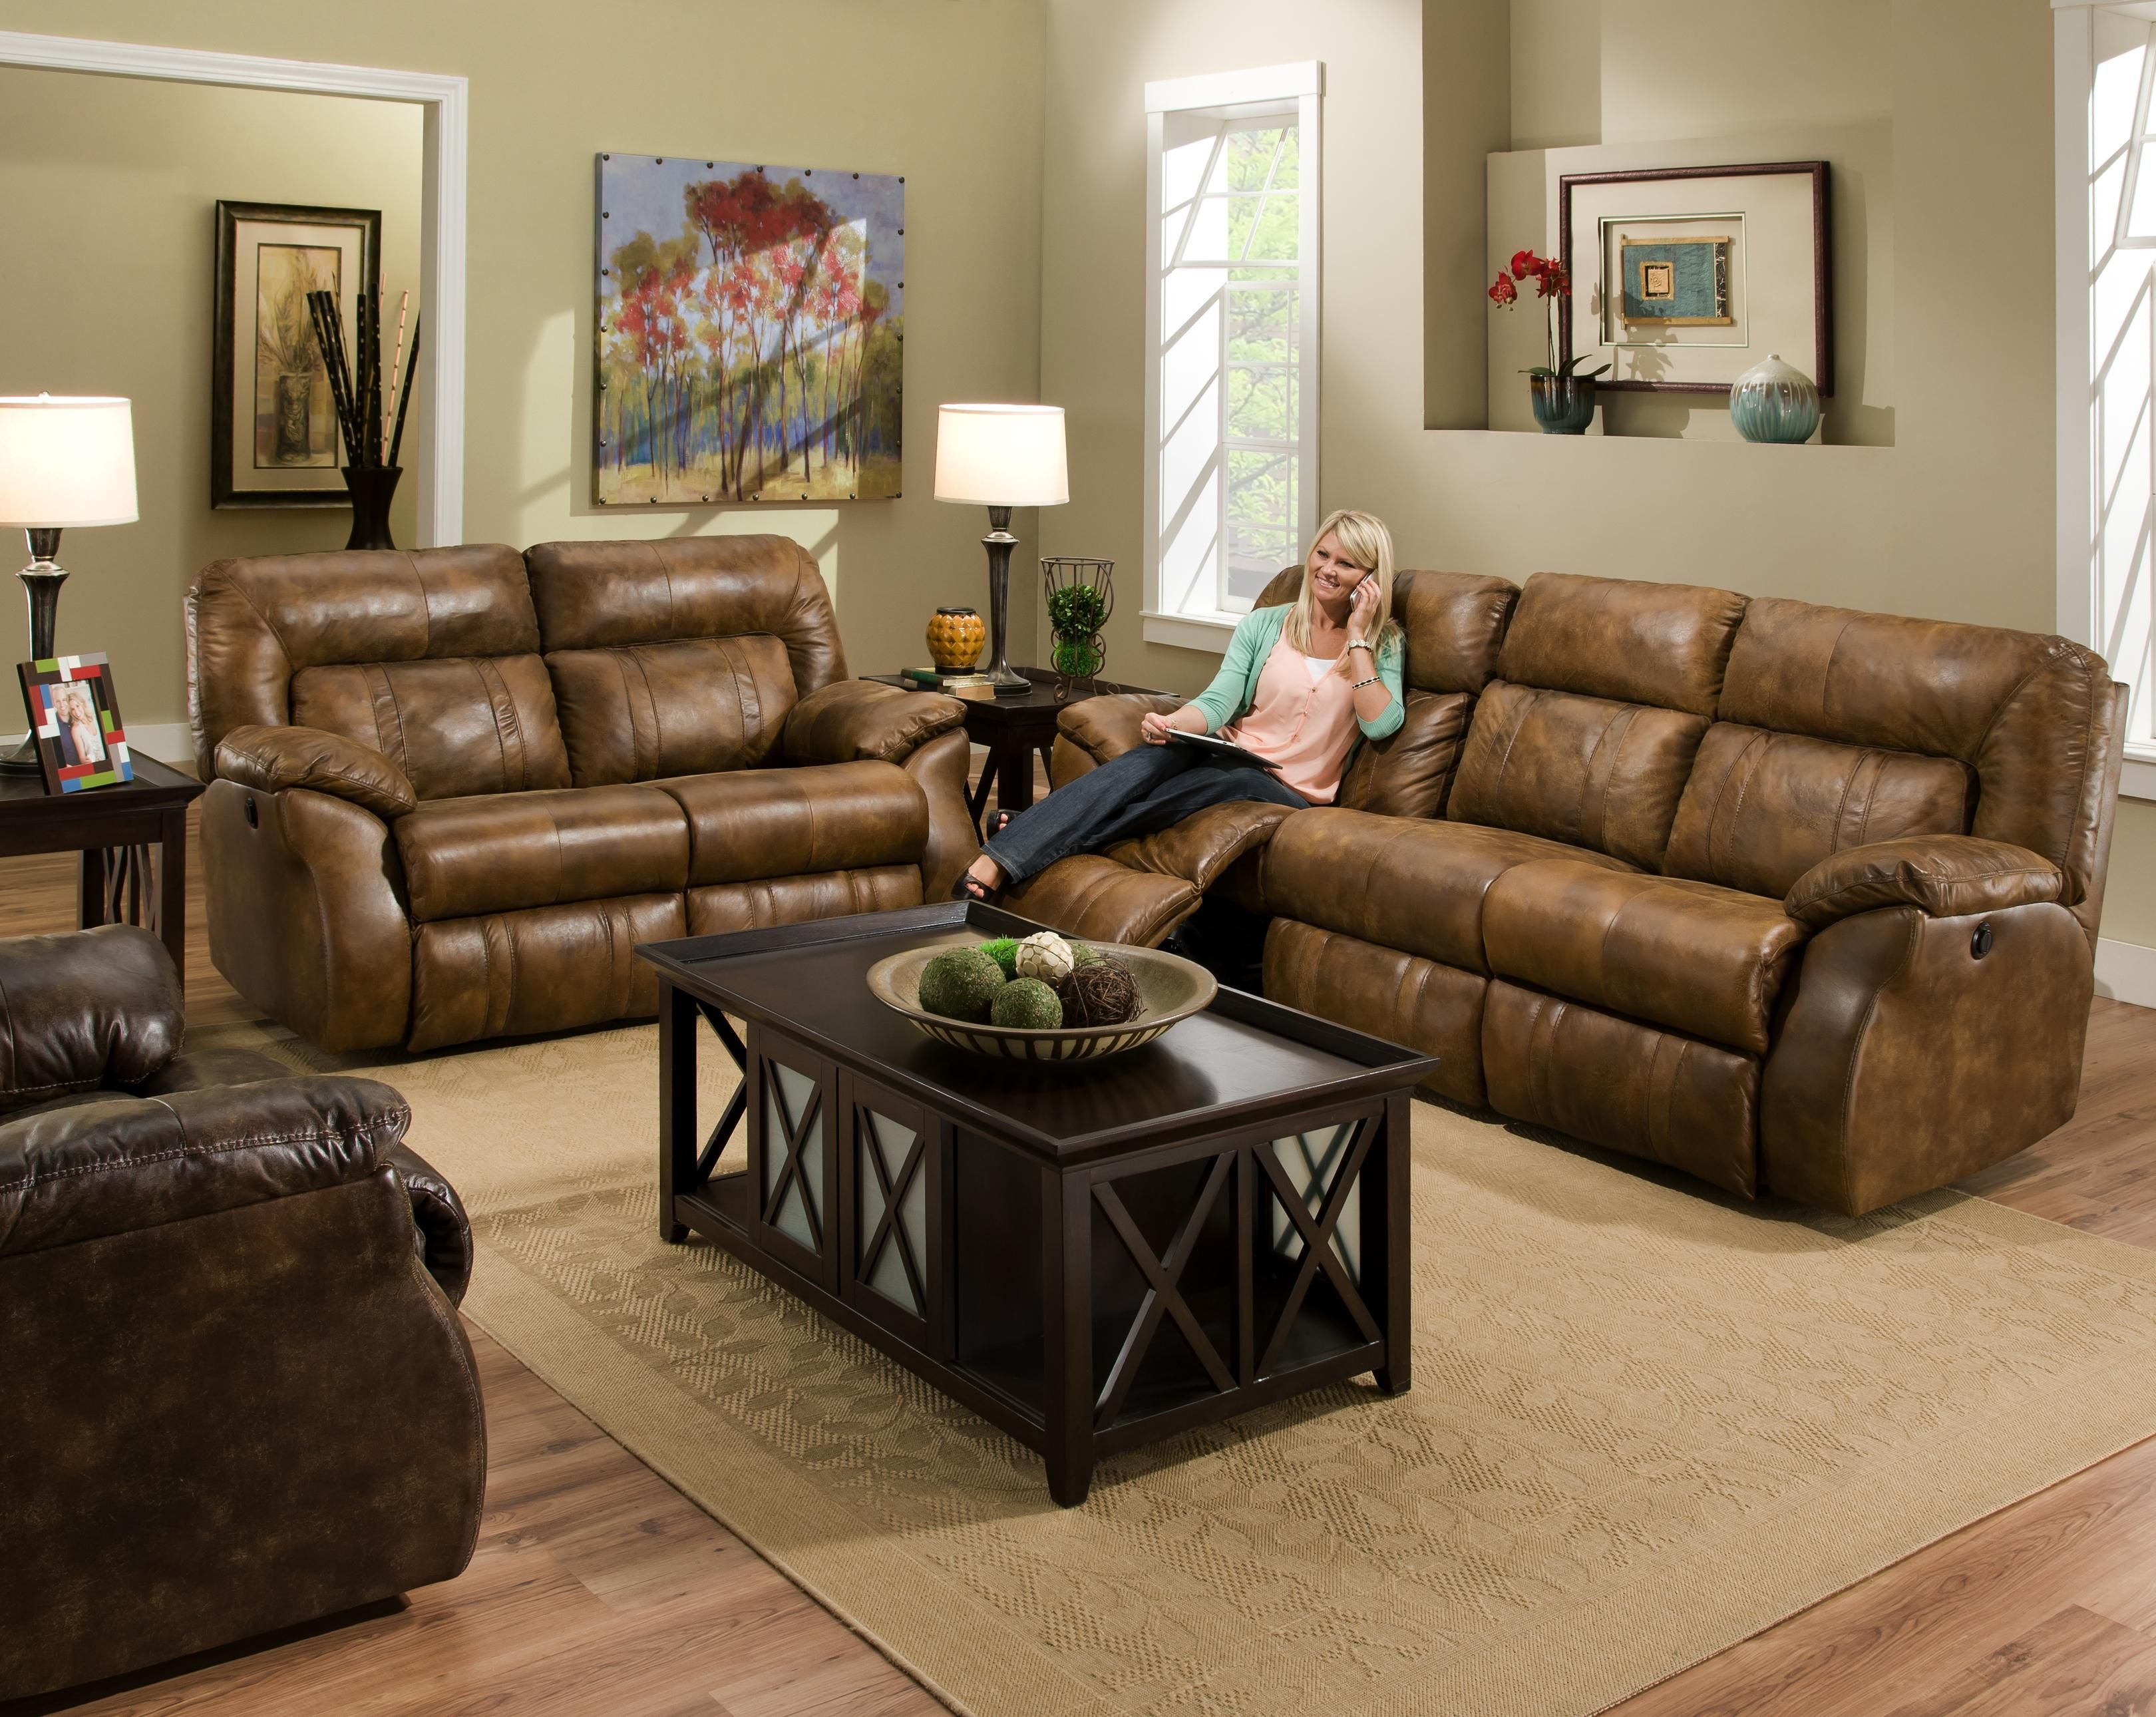 Living Room Collections Recliners and Lay Flat Sofas on Sale up to 50% off & Living Room Collections Recliners and Lay Flat Sofas on Sale up ... islam-shia.org